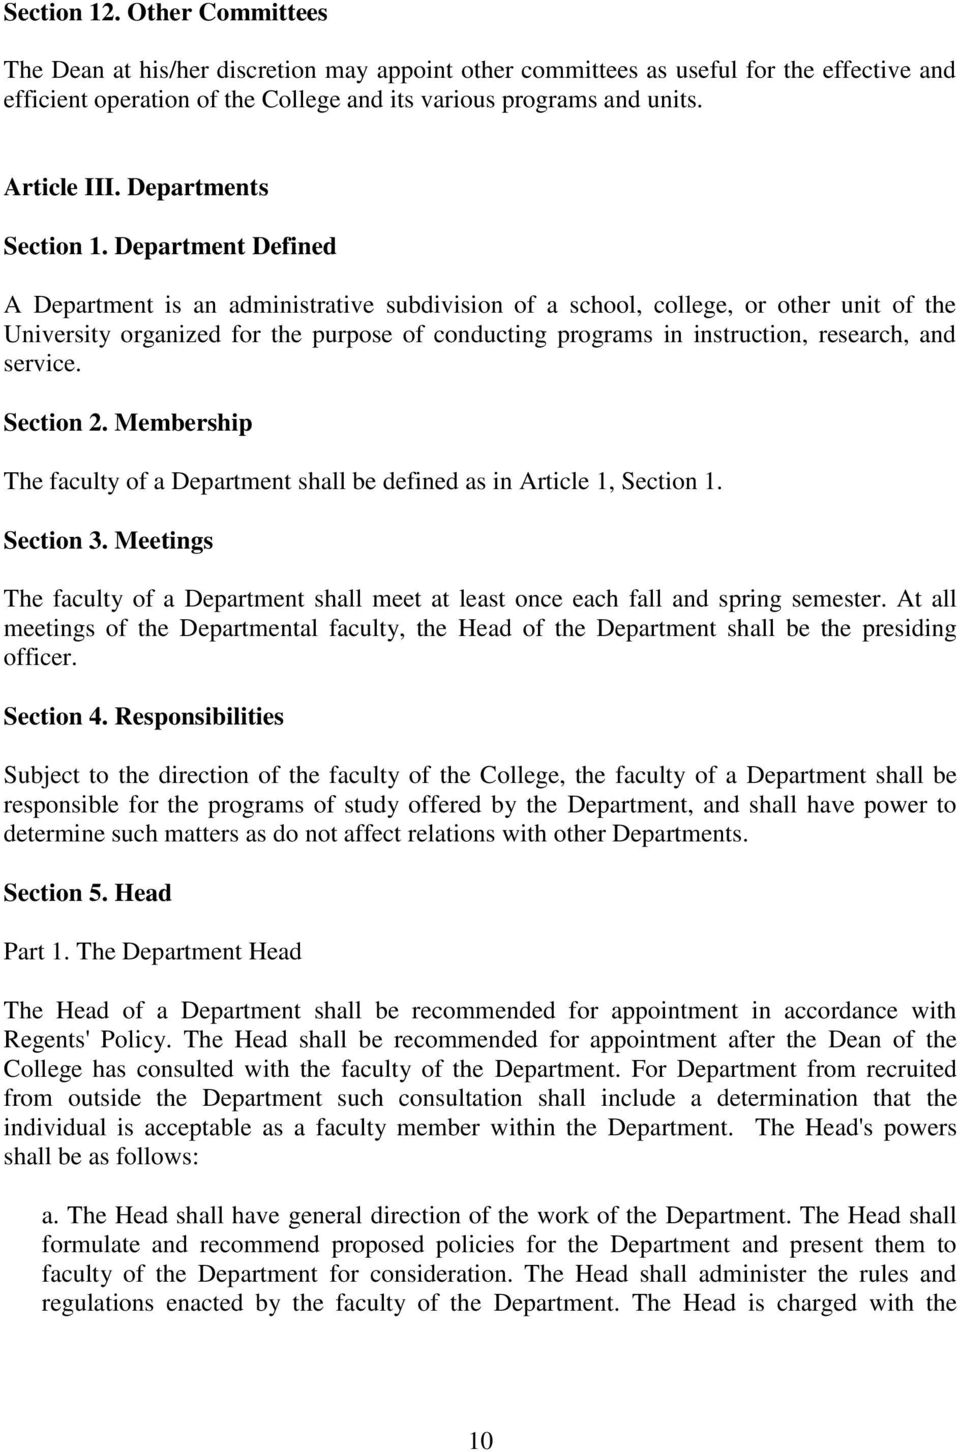 Department Defined A Department is an administrative subdivision of a school, college, or other unit of the University organized for the purpose of conducting programs in instruction, research, and